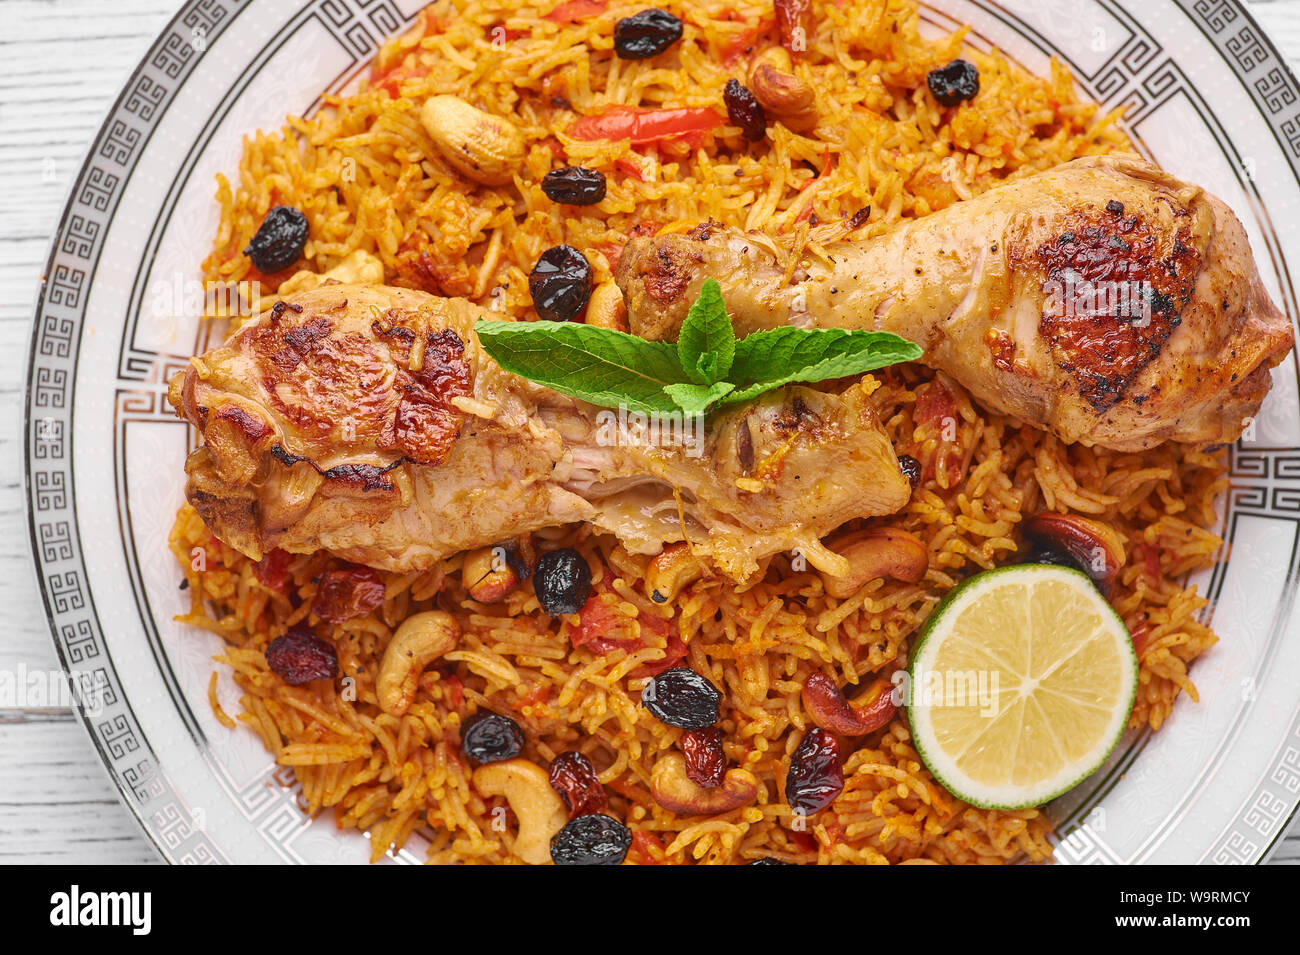 Chicken Kabsa Or Chicken Biryani At White Wooden Background Kabsa Is Traditional Saudi Arabian Cuisine Dish Kabsa Cooks With Basmati Rice Chicken Stock Photo Alamy